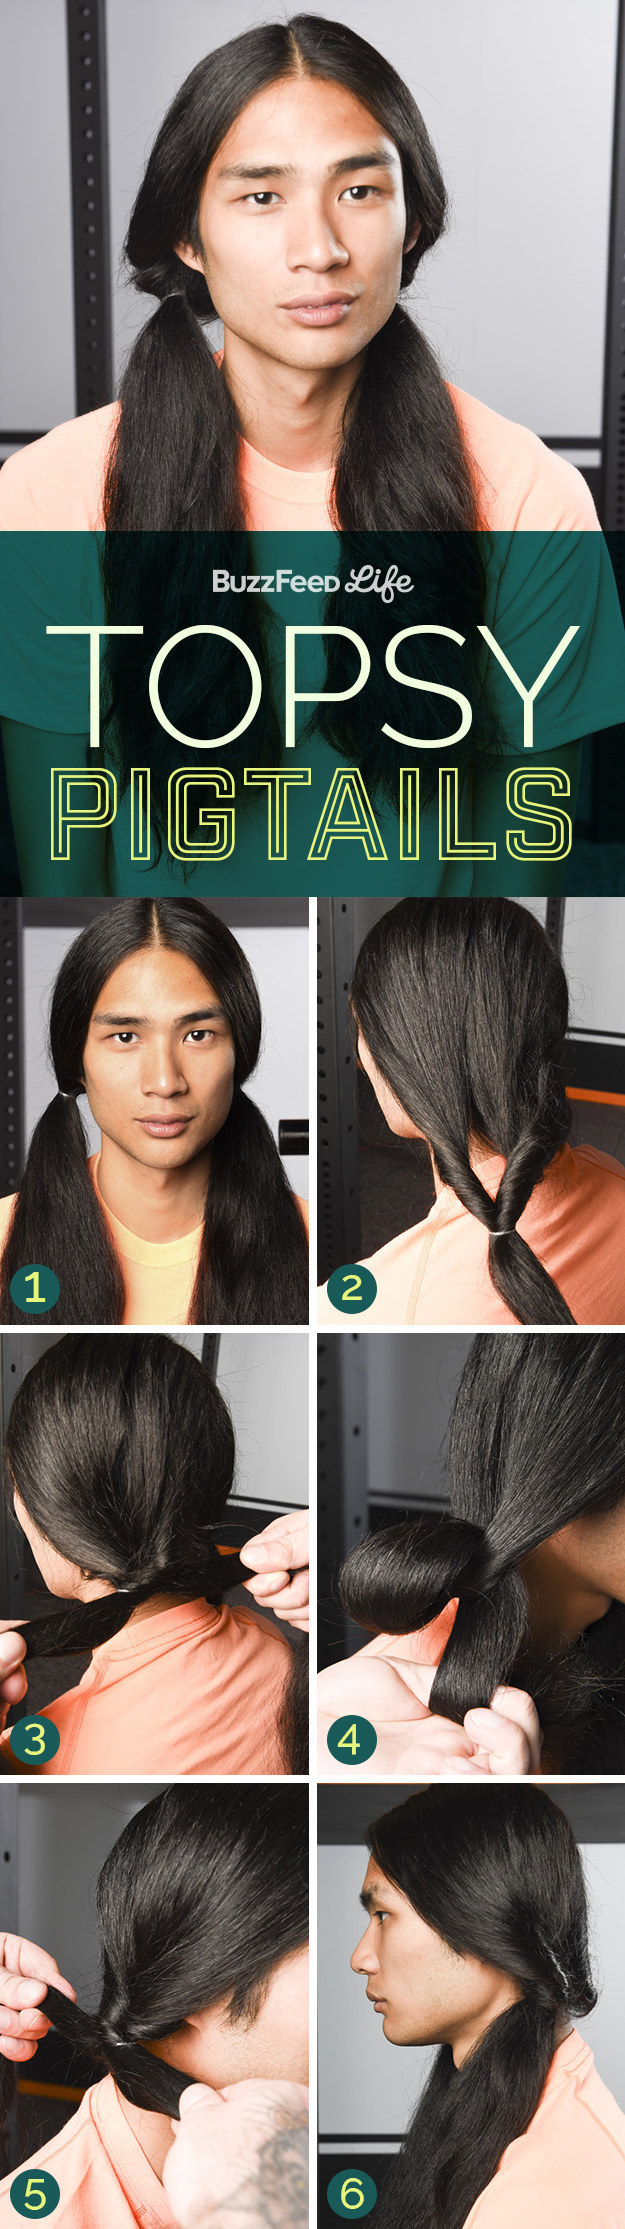 Astounding 8 Ways To Style Your Hair For The Gym That Are Actually Awesome Short Hairstyles Gunalazisus